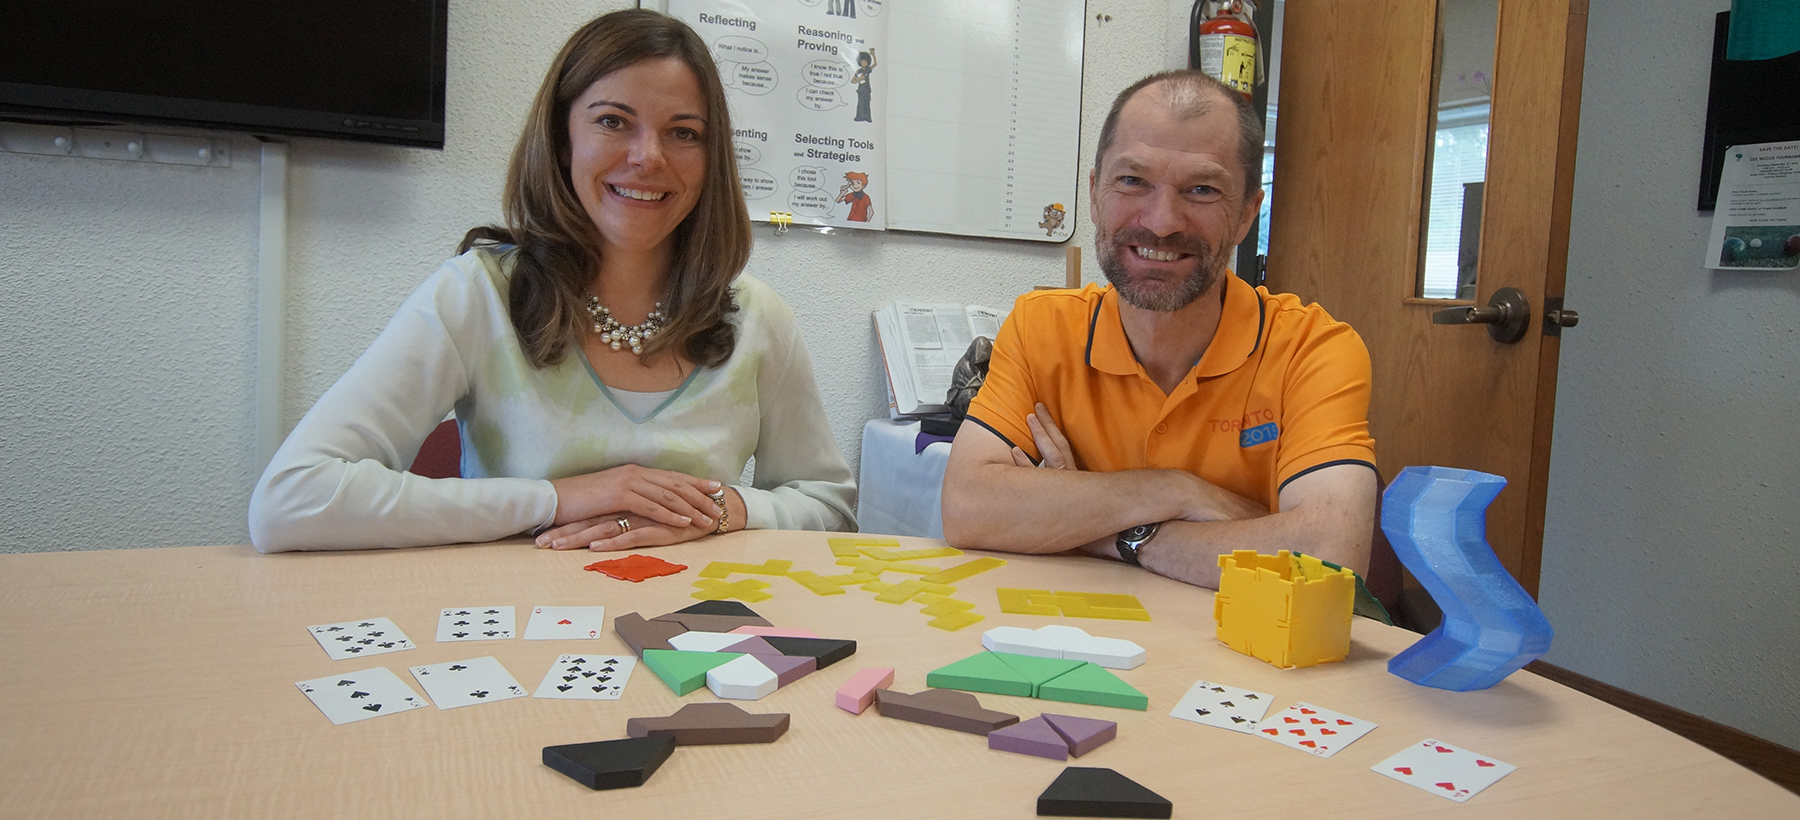 Female and male adult sitting at a table with math items